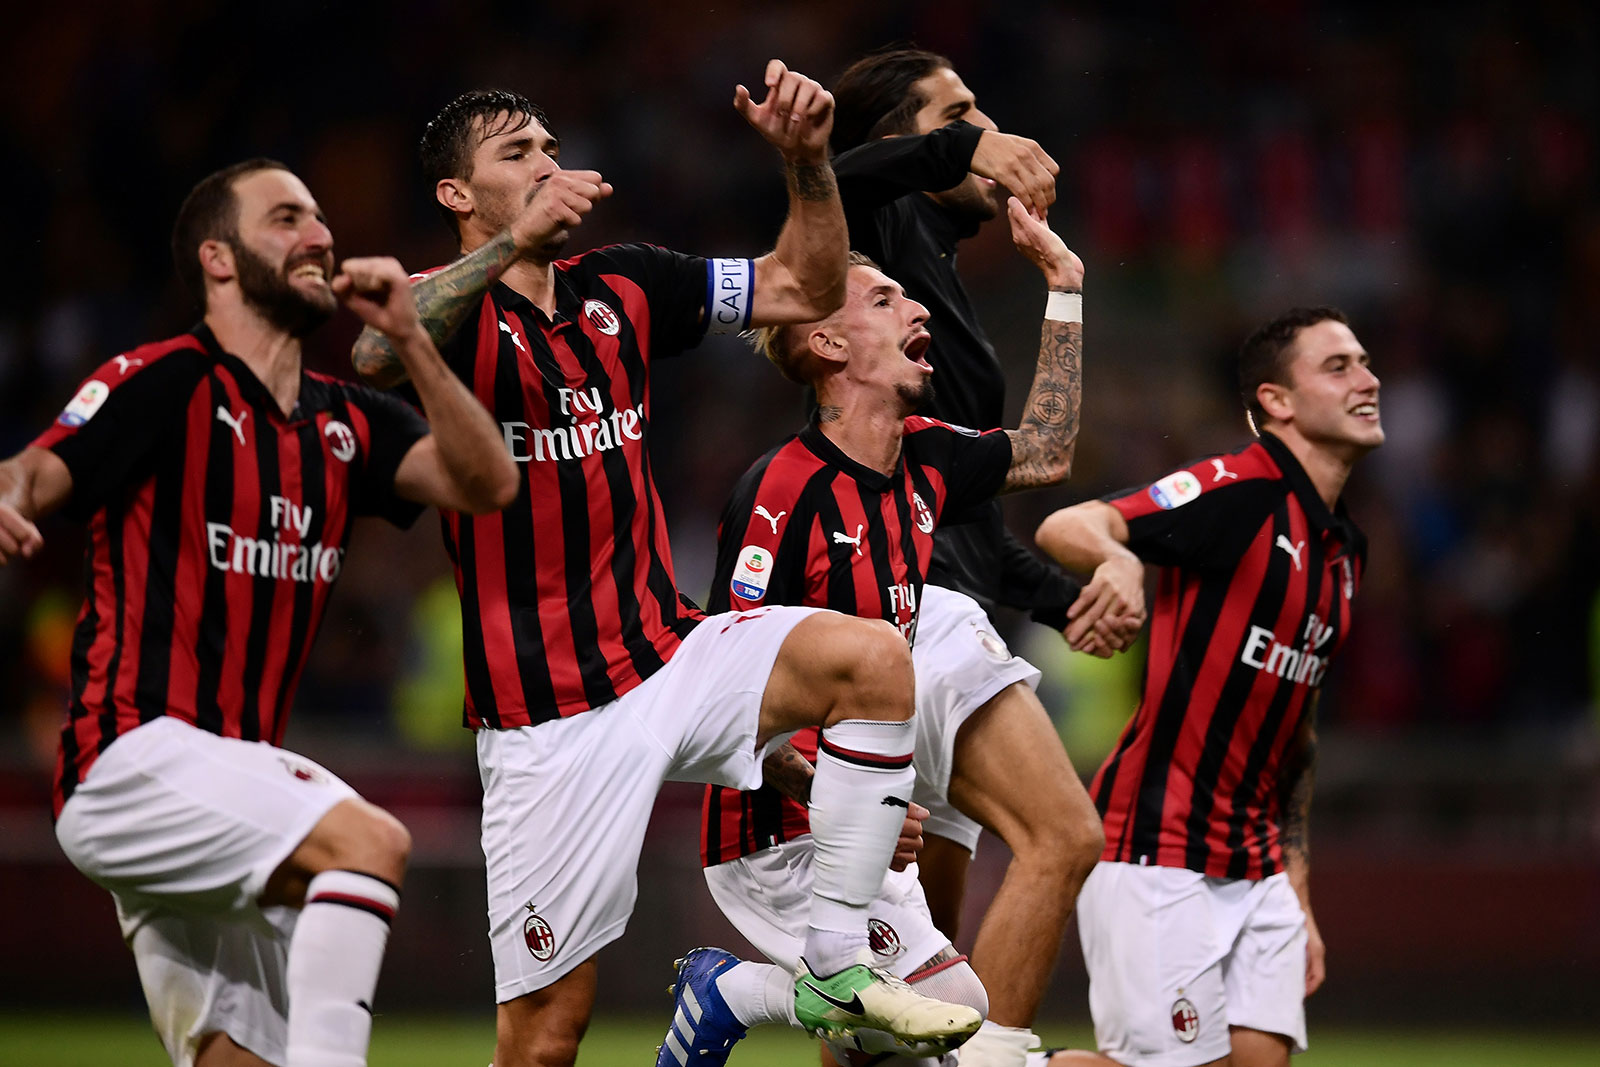 Gonzalo Higuain, Alessio Romagnoli, Samu Castillejo, Ricardo Rodriguez and Davide Calabria celebrating at the end of Milan-Roma at Stadio San Siro on August 31, 2018. (MARCO BERTORELLO/AFP/Getty Images)